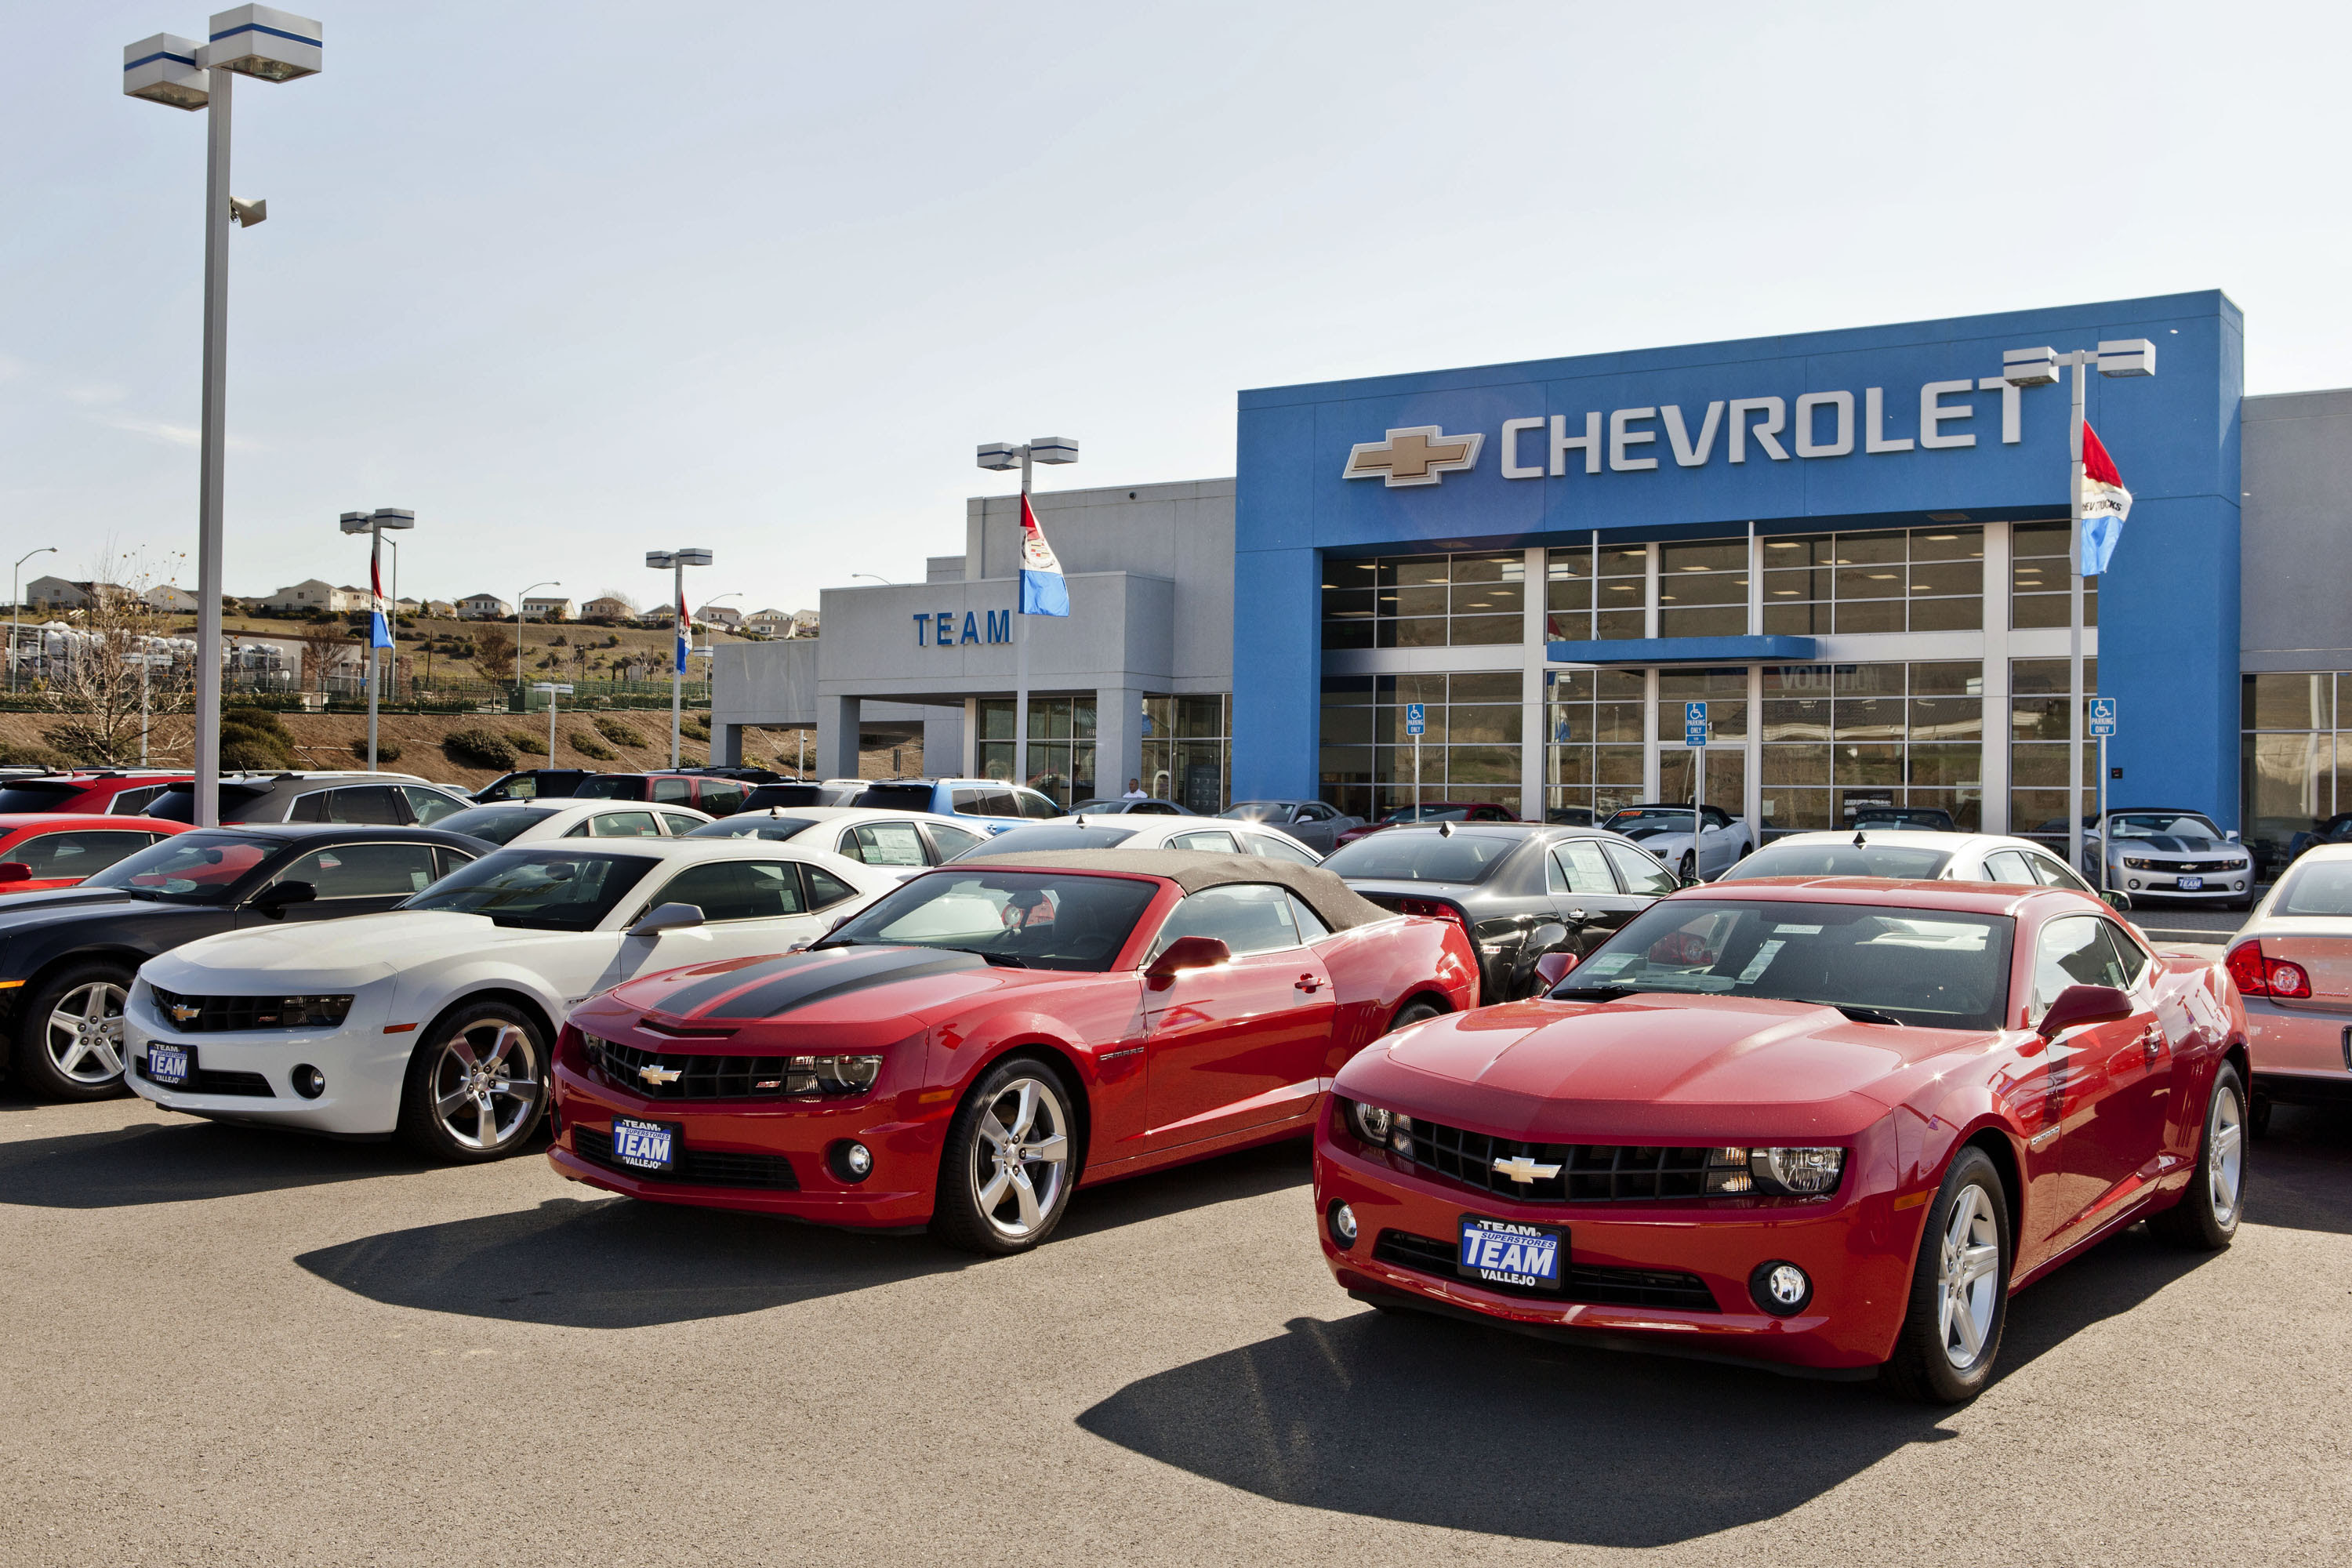 Chevy Dealerships Near Me >> Chevy Dealer Near Me Highway Houston Tx Autonation Autocars Blog